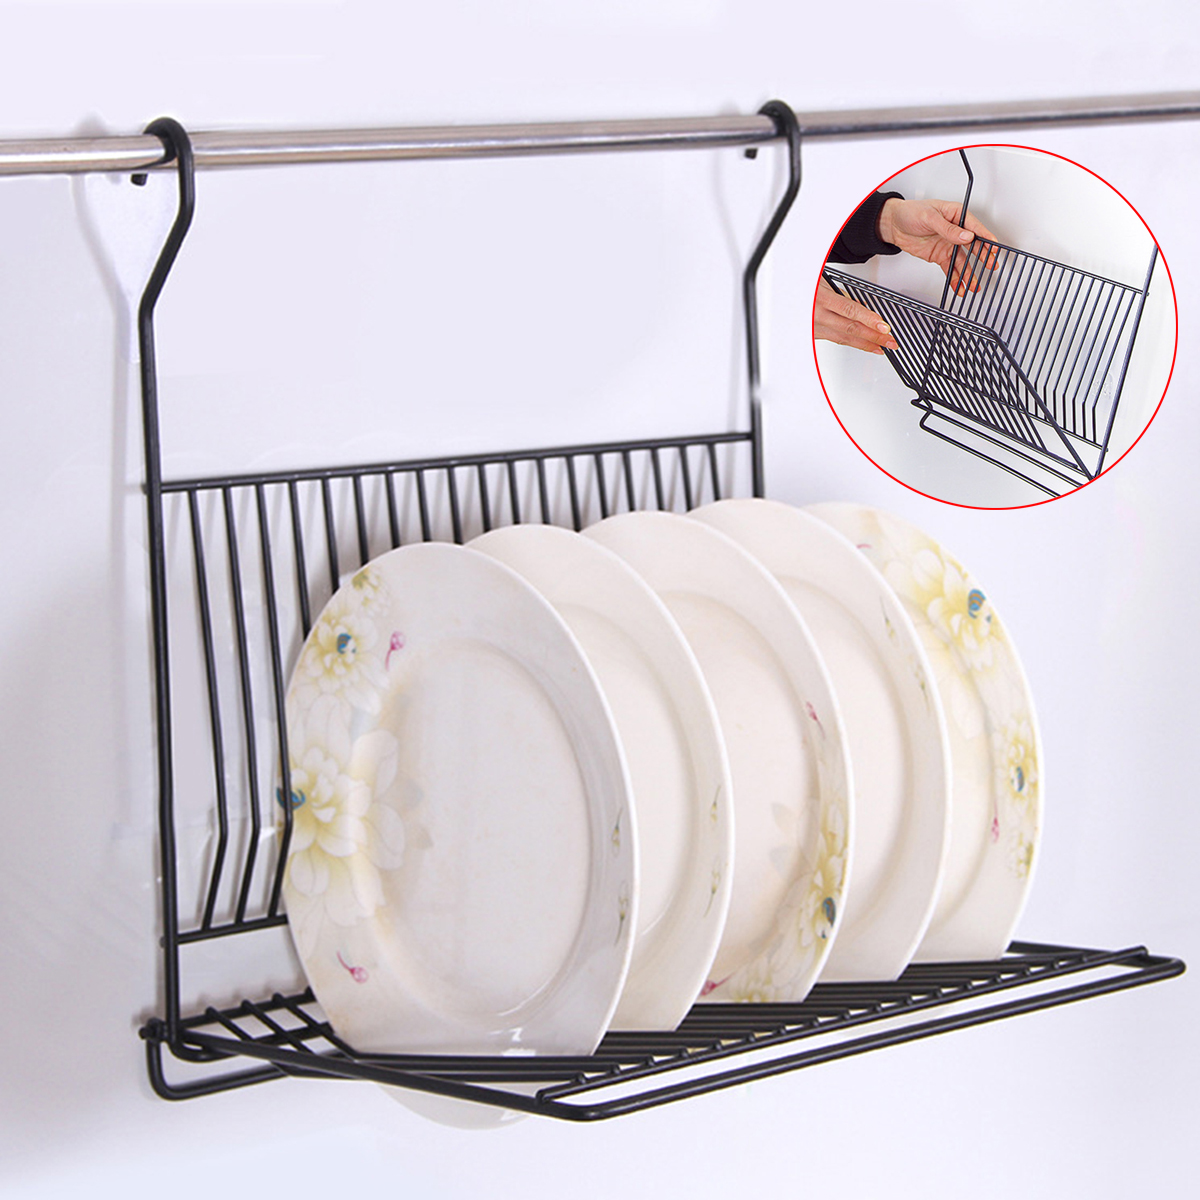 Collapsible Dish Rack Drainer Drying Wall Hanging Portable Cutlery Dryer Space Ebay